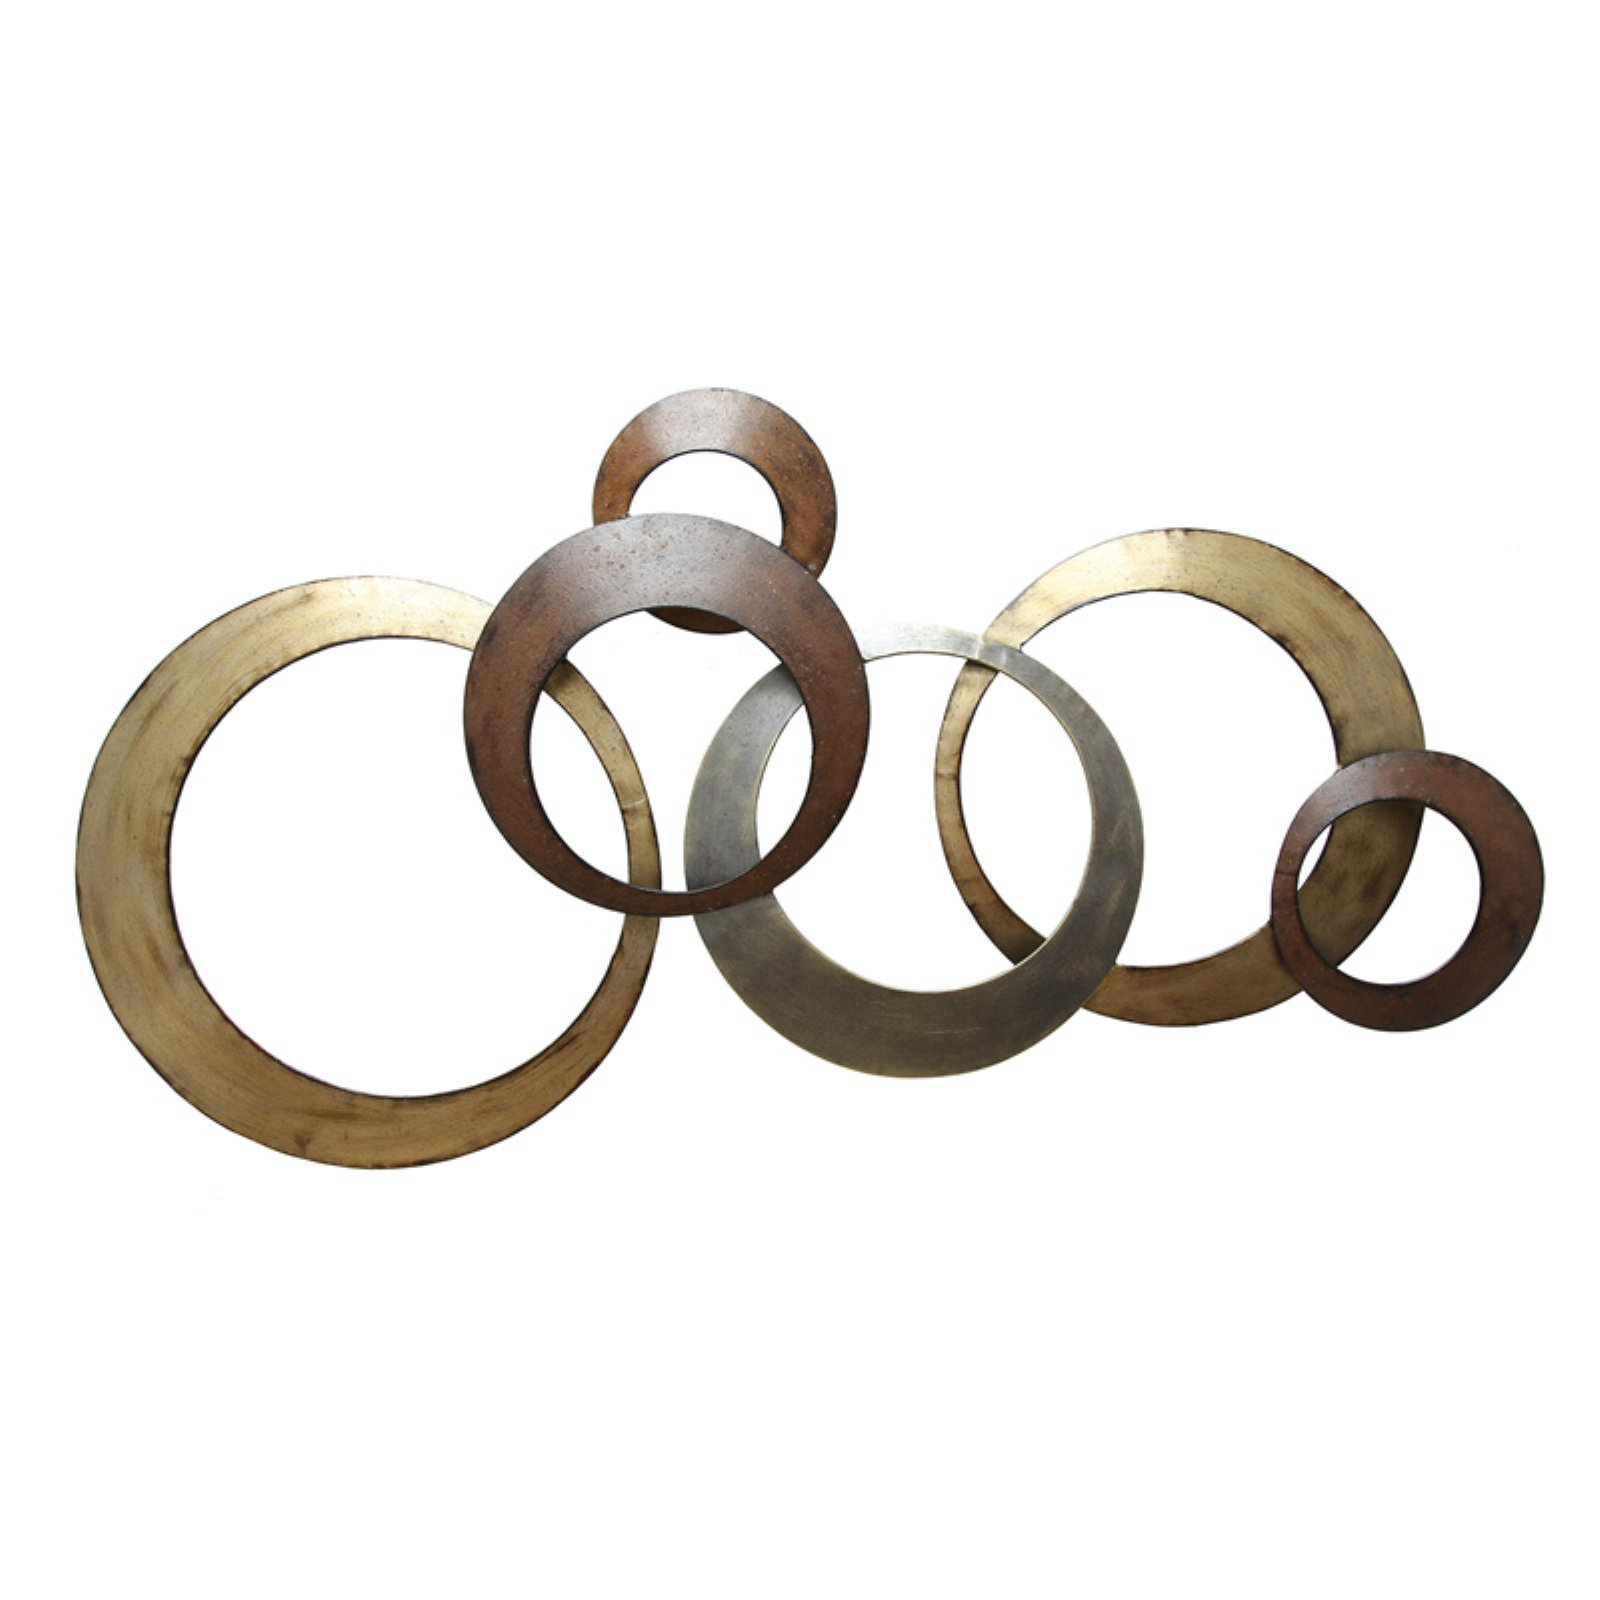 2020 Rings Wall Decor In Stratton Home Decor Metallic Rings Wall Decor – Walmart (View 5 of 20)